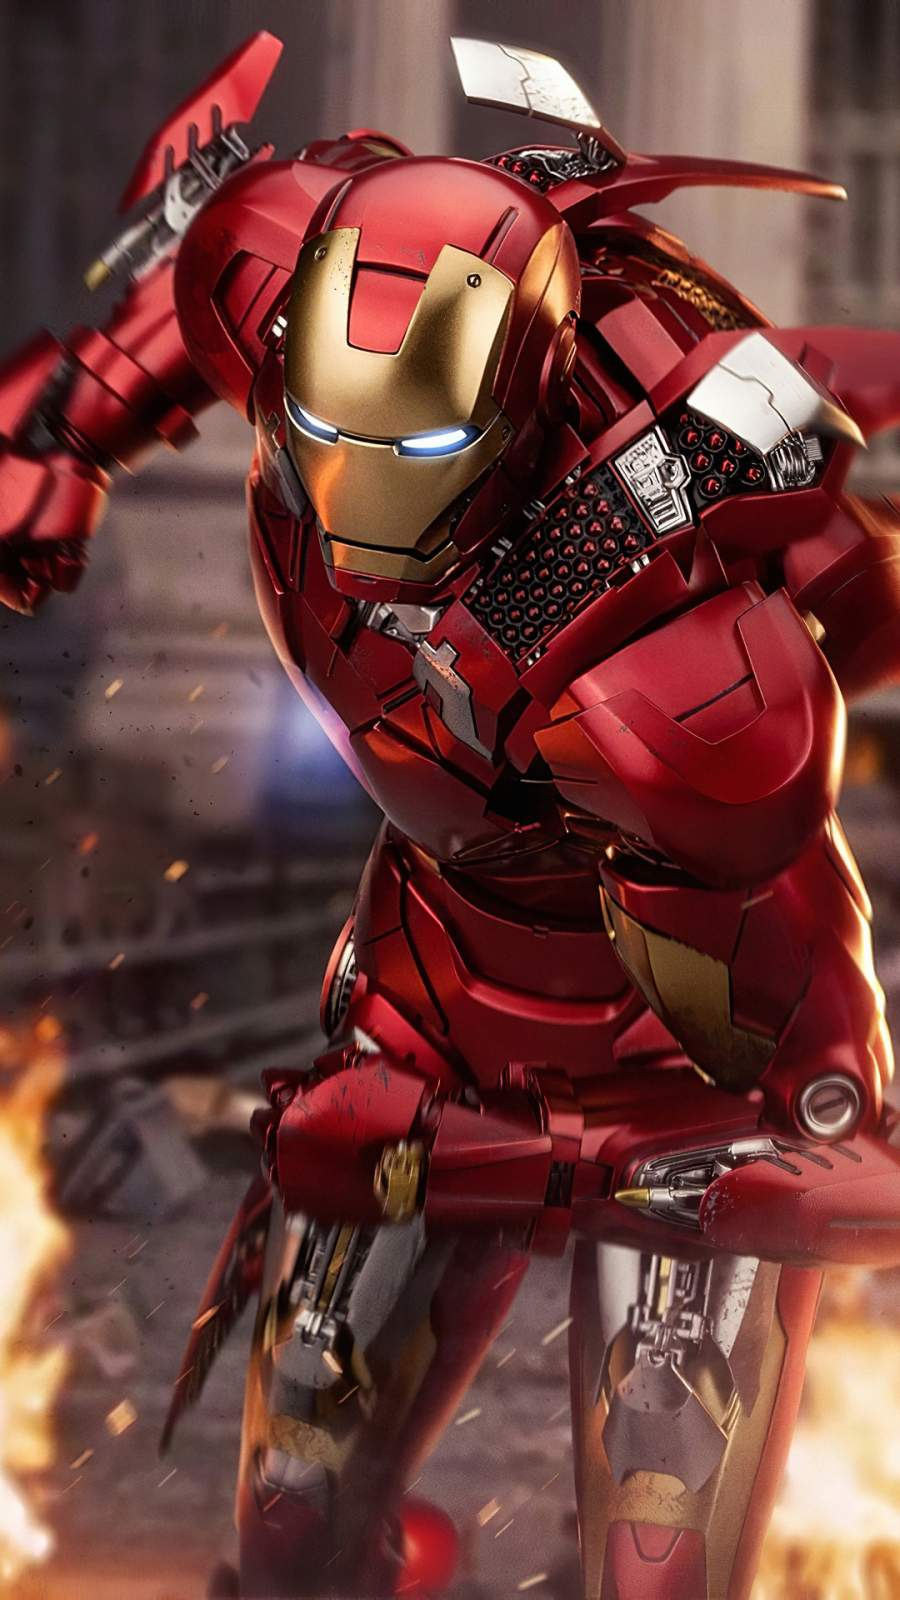 Iron Man Weapons 4K iPhone Wallpaper